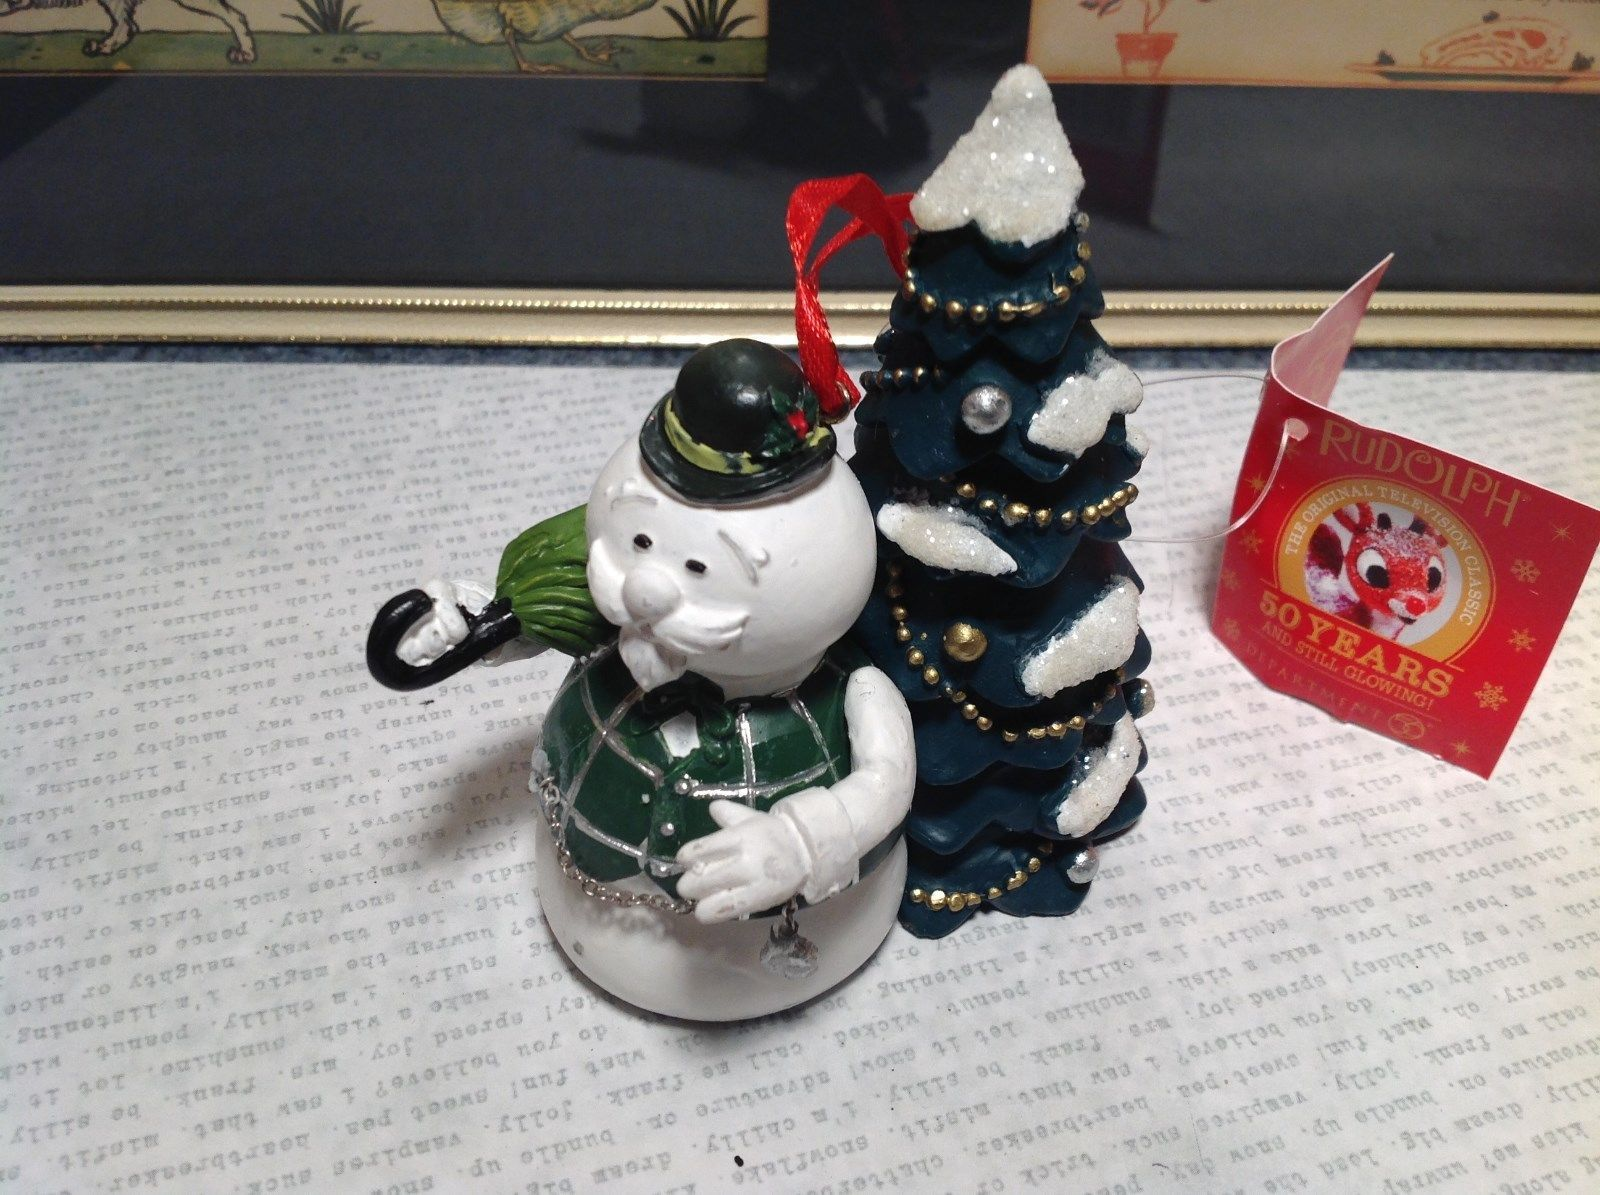 50 Year Anniversary Rudolph Snowman with Tree Christmas Tree Ornament